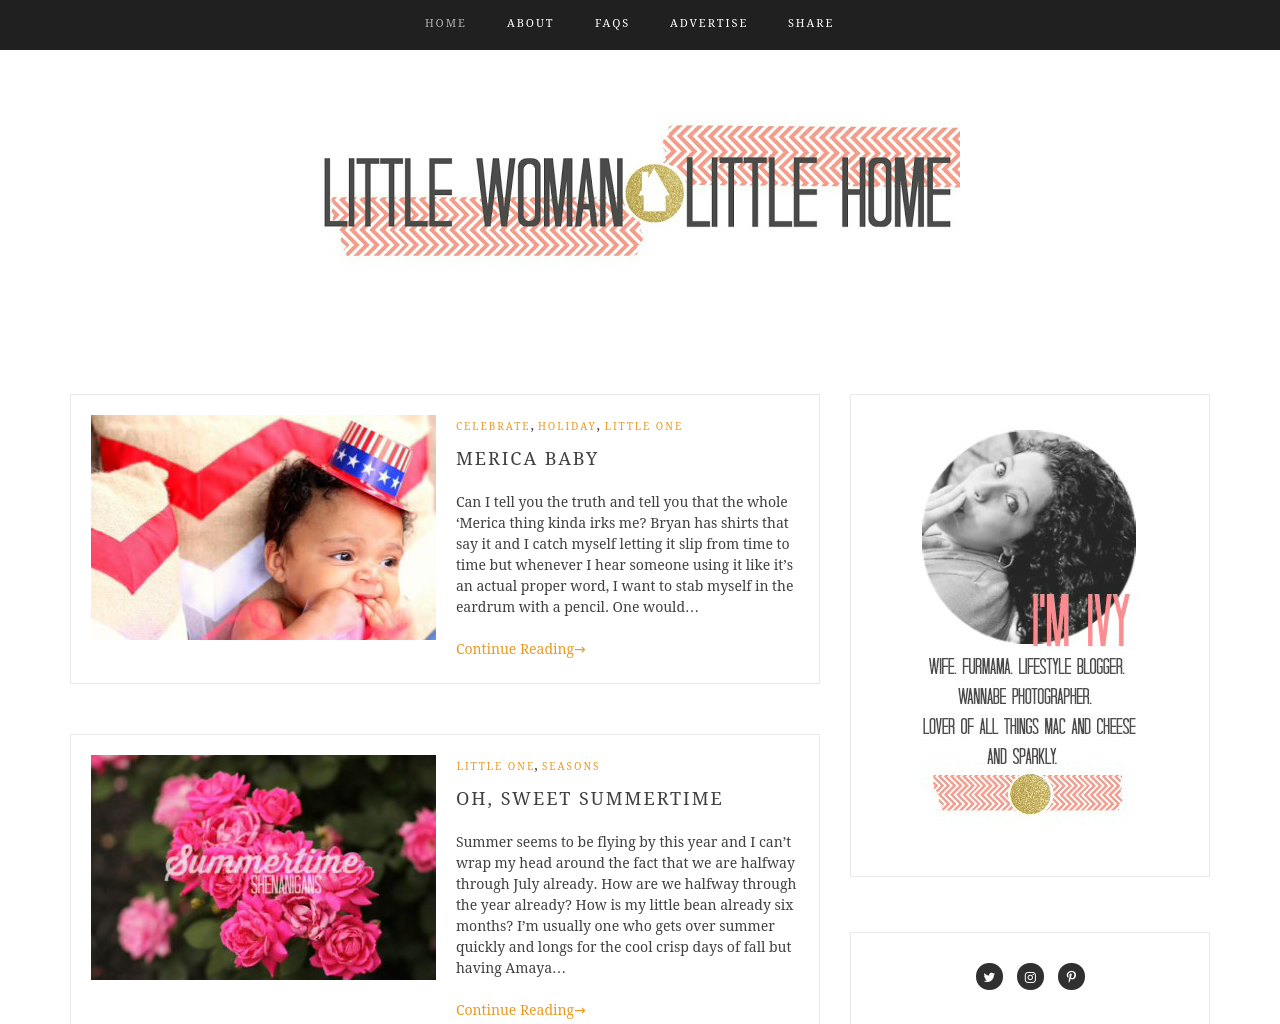 Little-Woman-Little-Home-Advertising-Reviews-Pricing